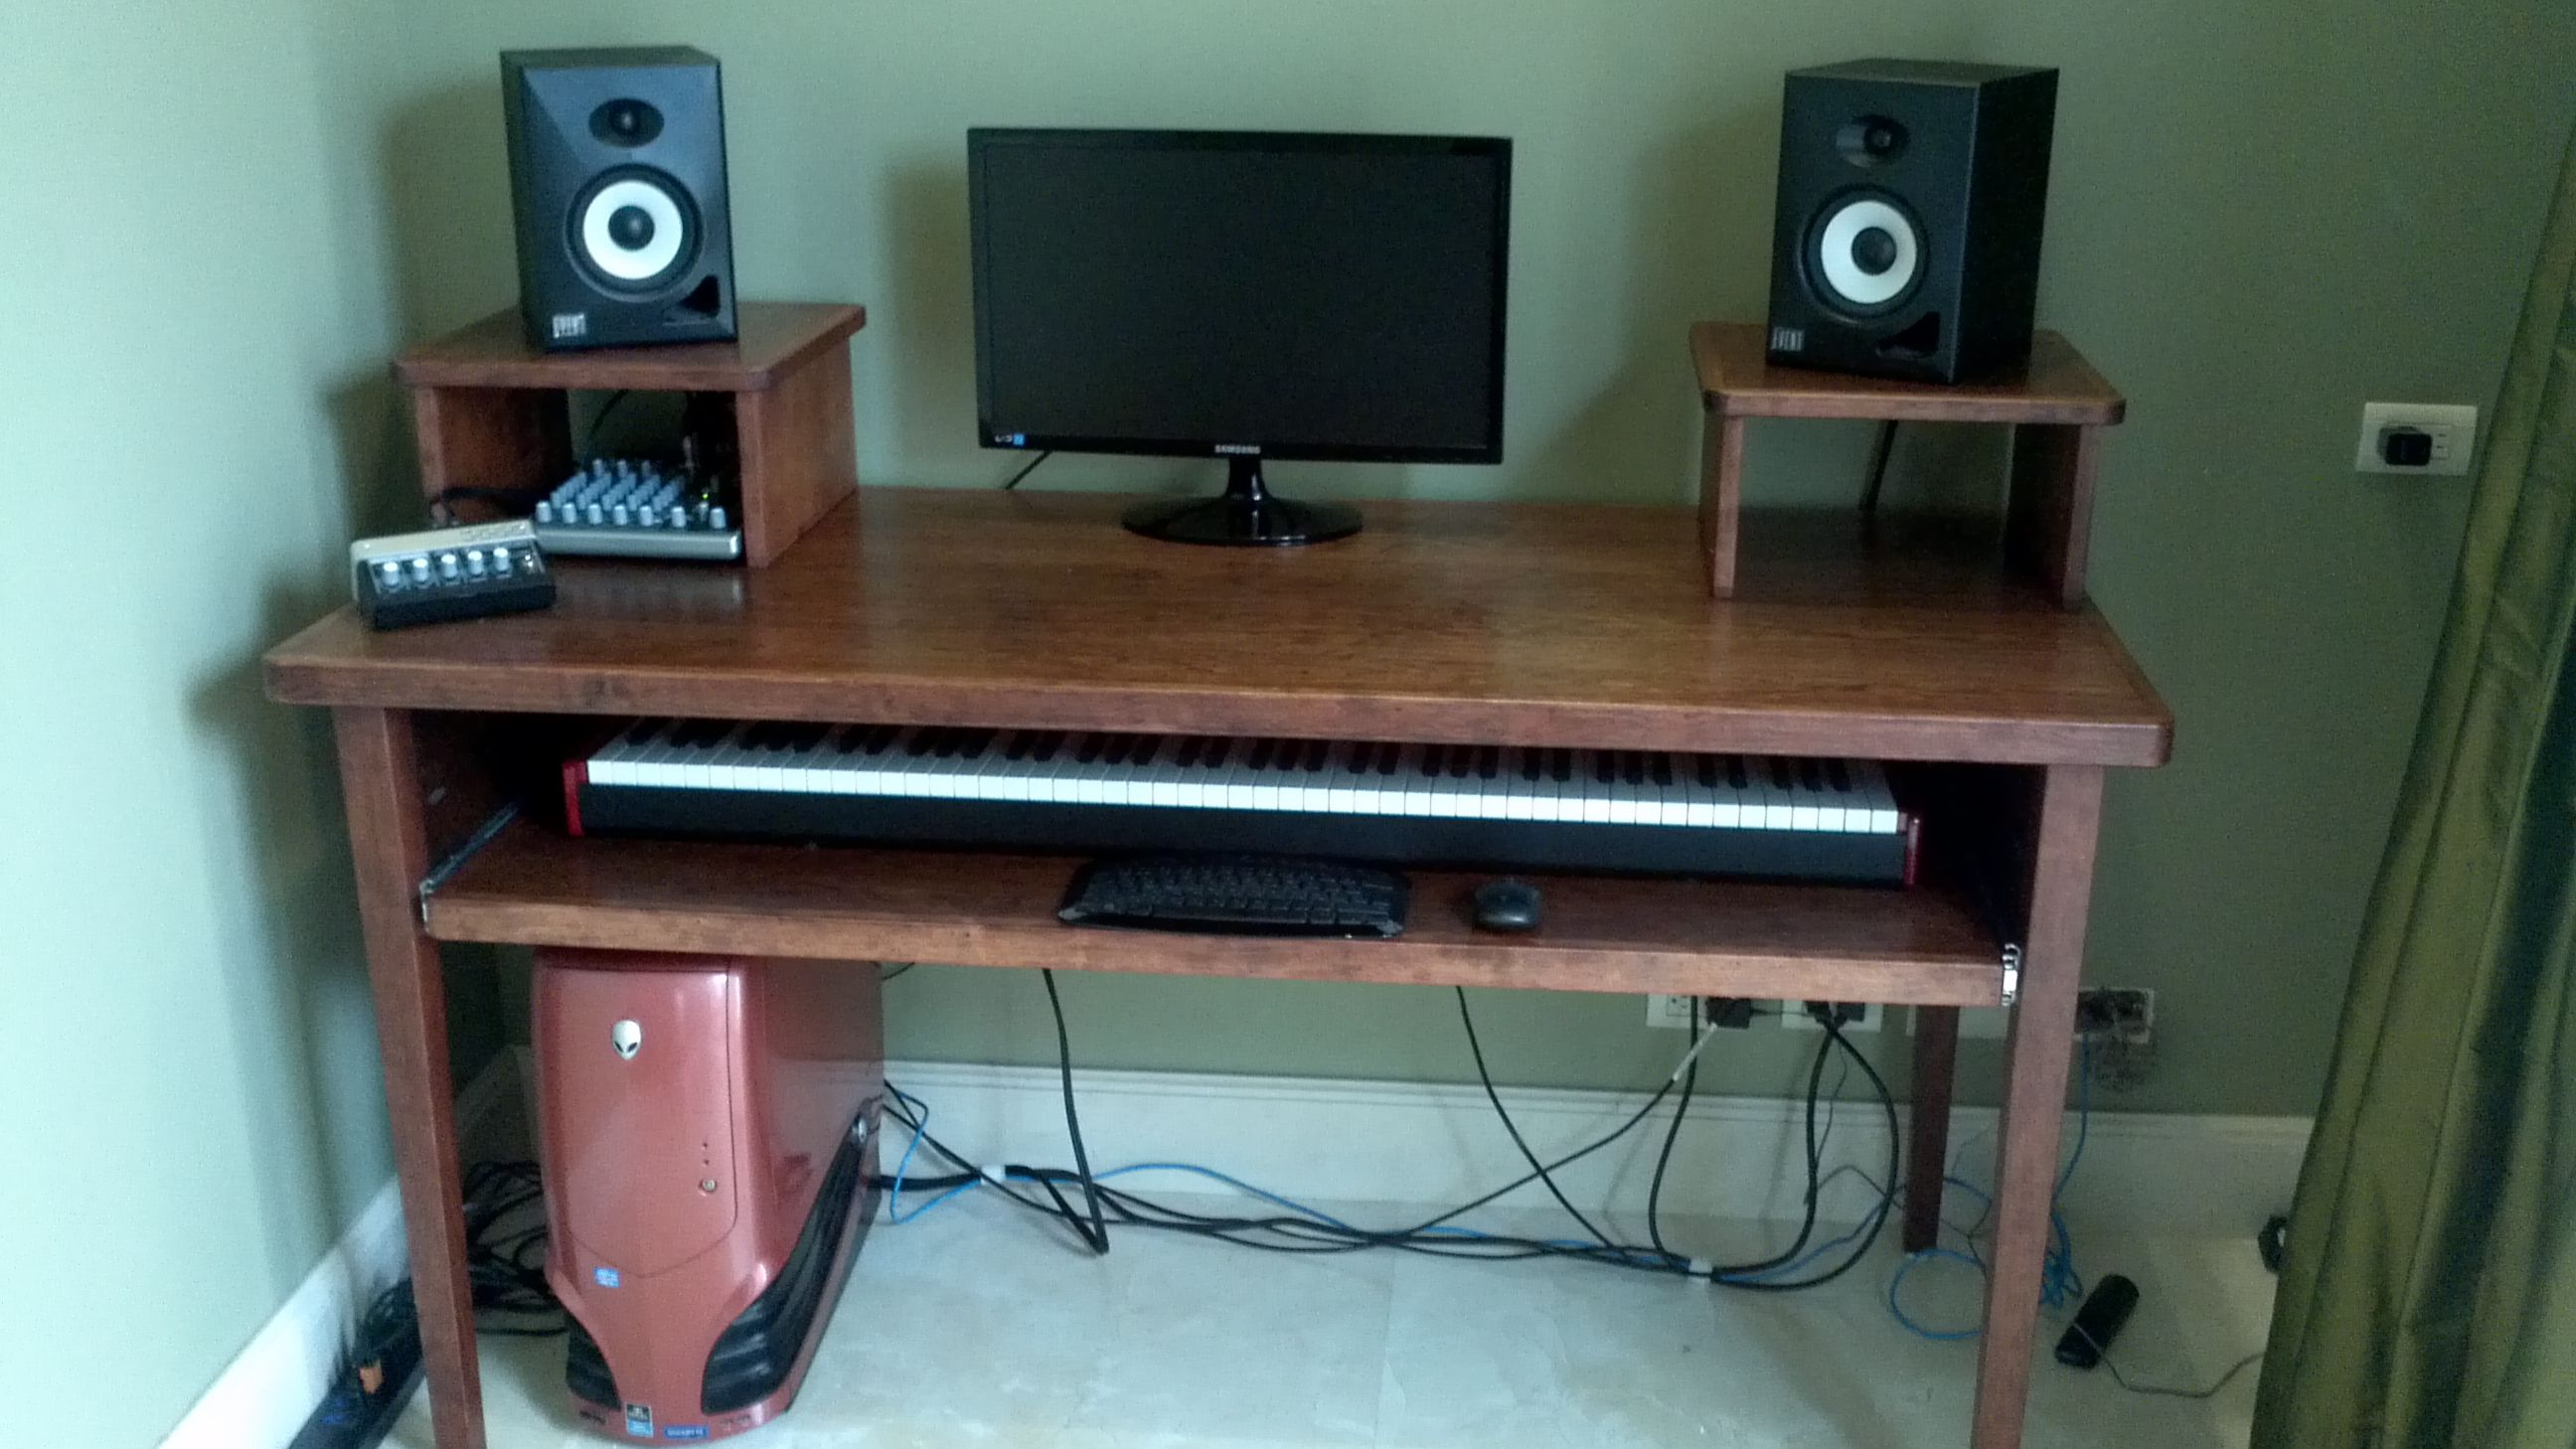 Basic Mixing Desk Home Studio Desk Home Studio Setup Studio Desk